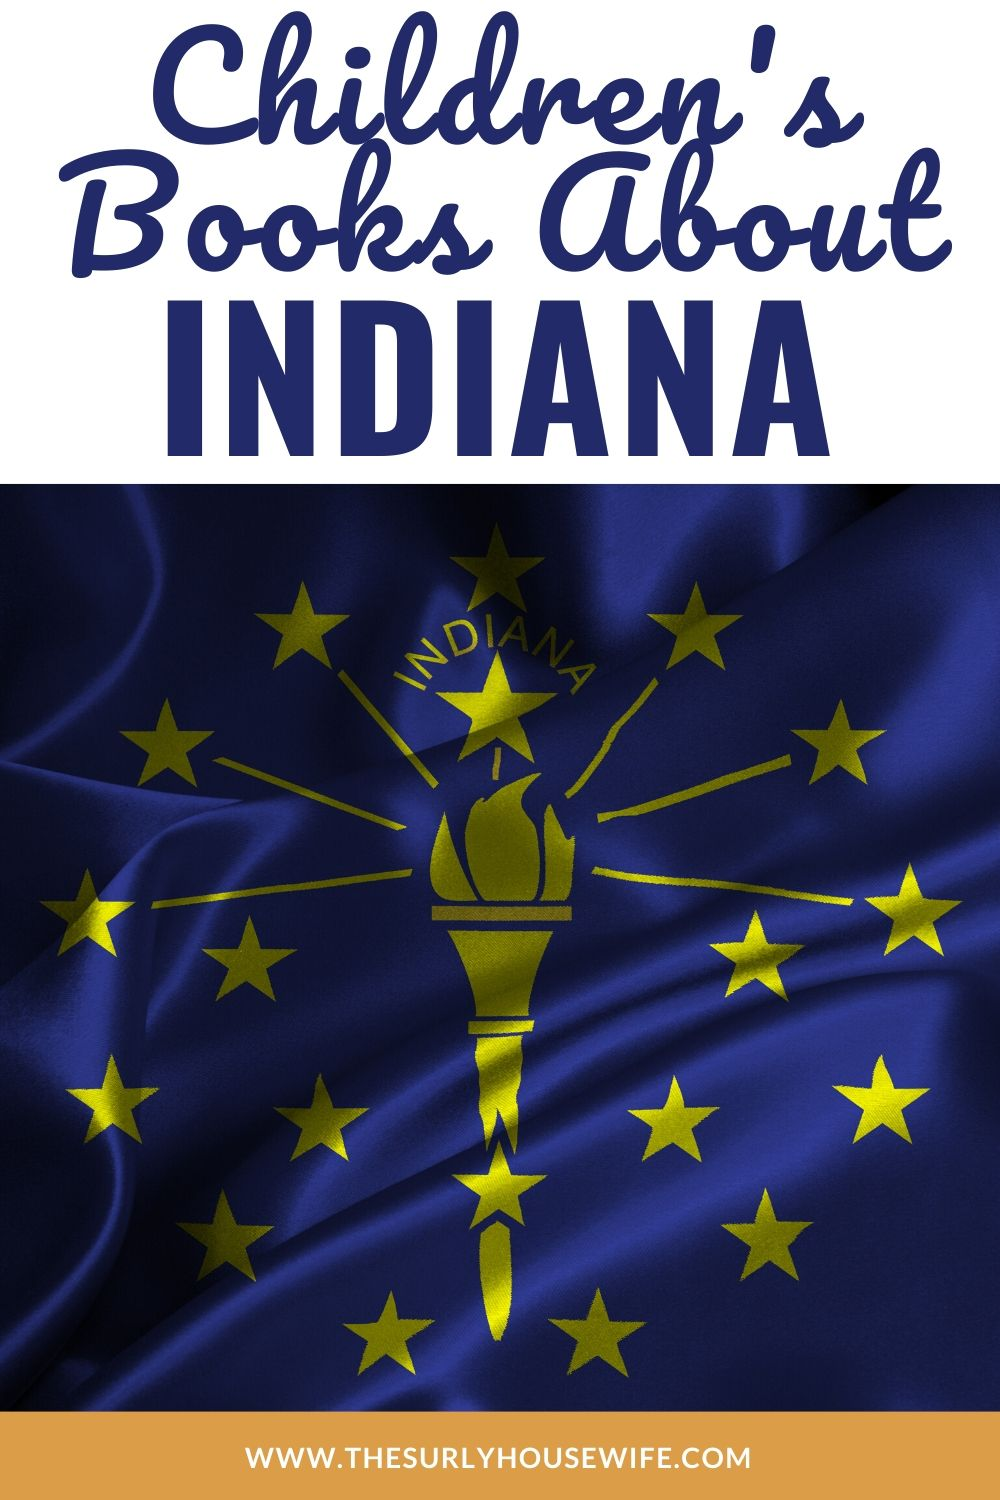 Searching for books about Indiana, then check out this post! It contains children's books, chapter books, and picture books about the Hoosier State!